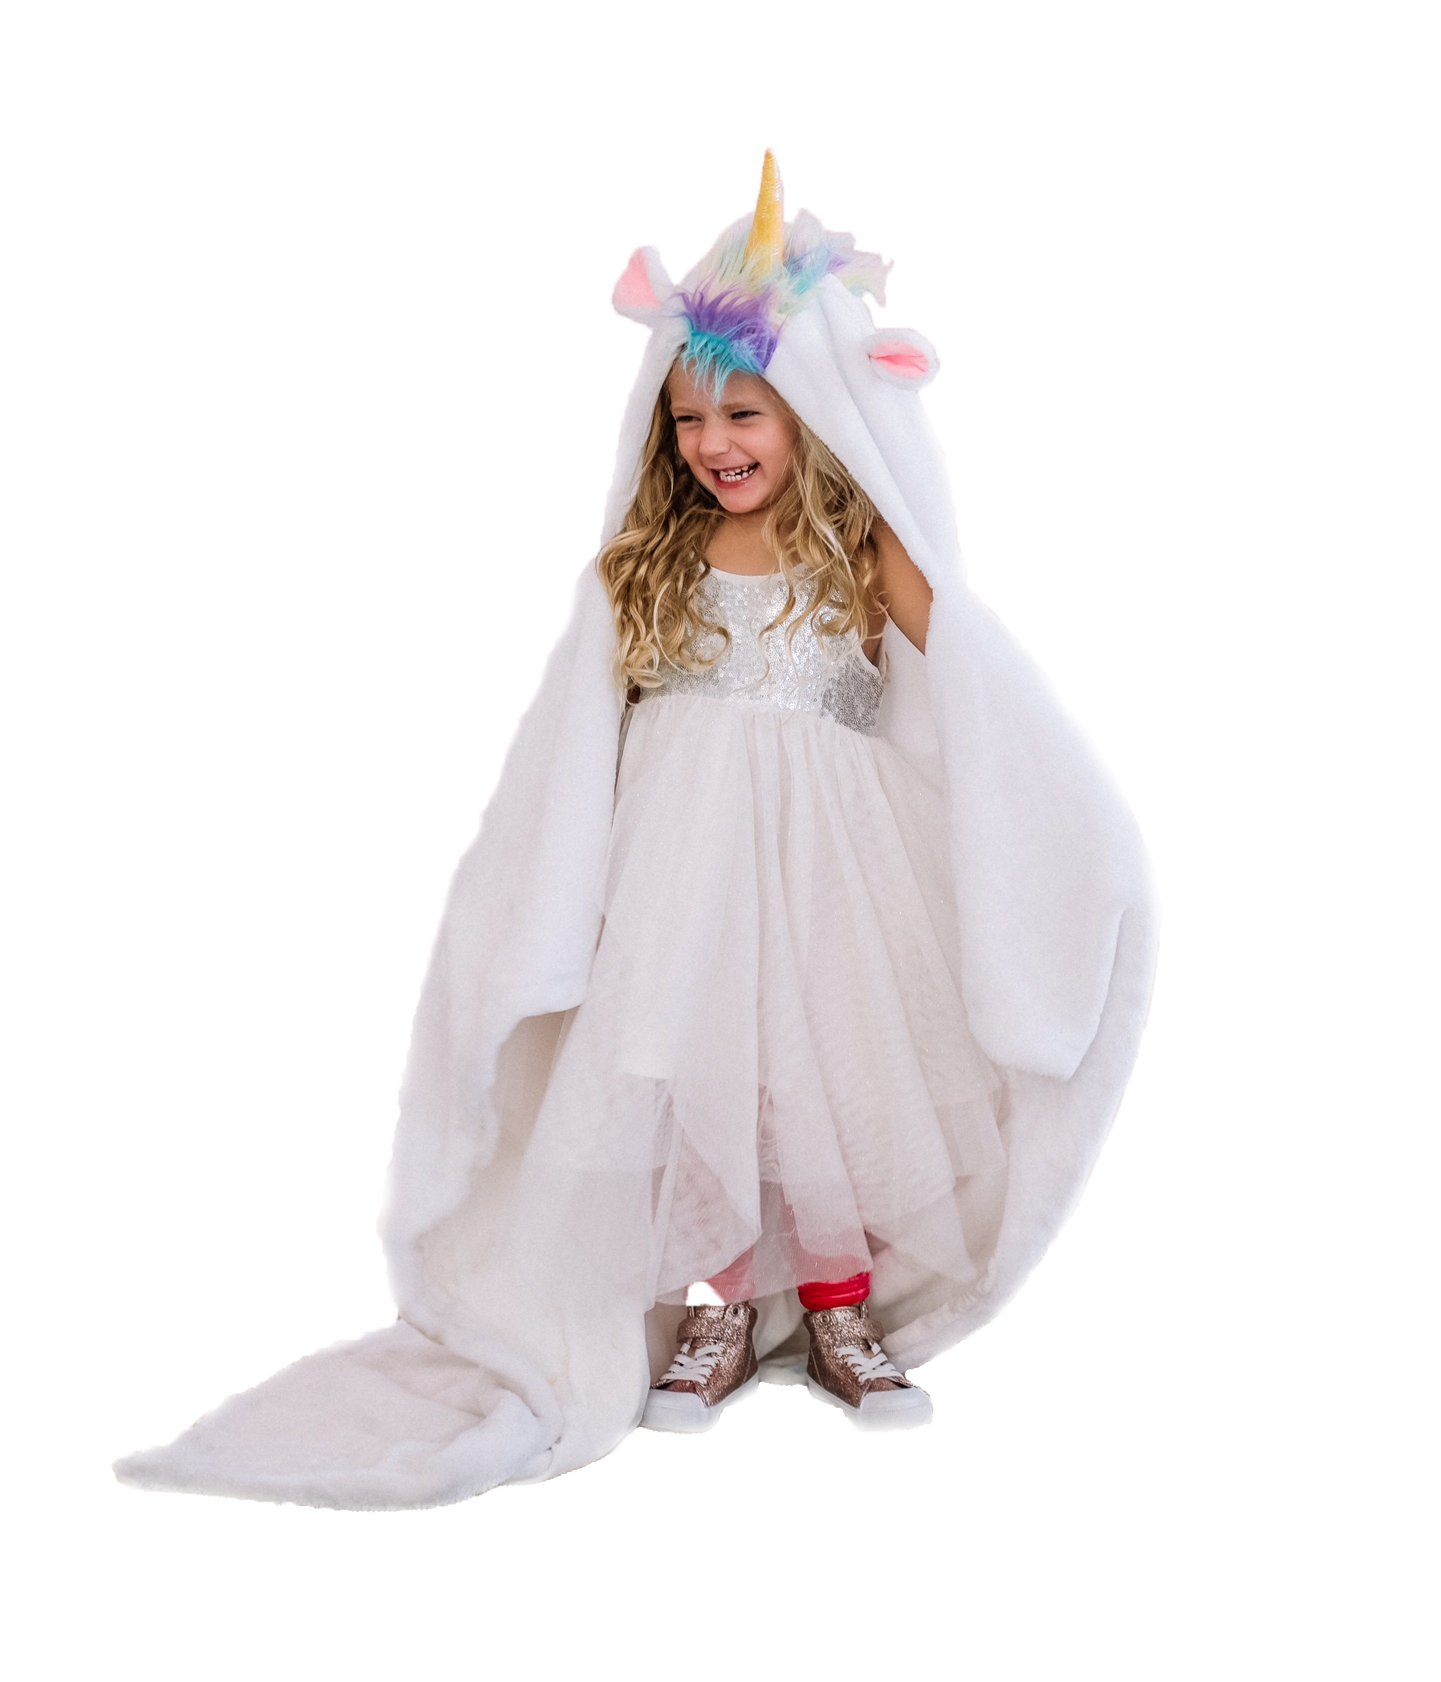 JaceyLane - Unicorn Blanket | Comfortable Soft Mink Fabric Blanket| by JaceyLane